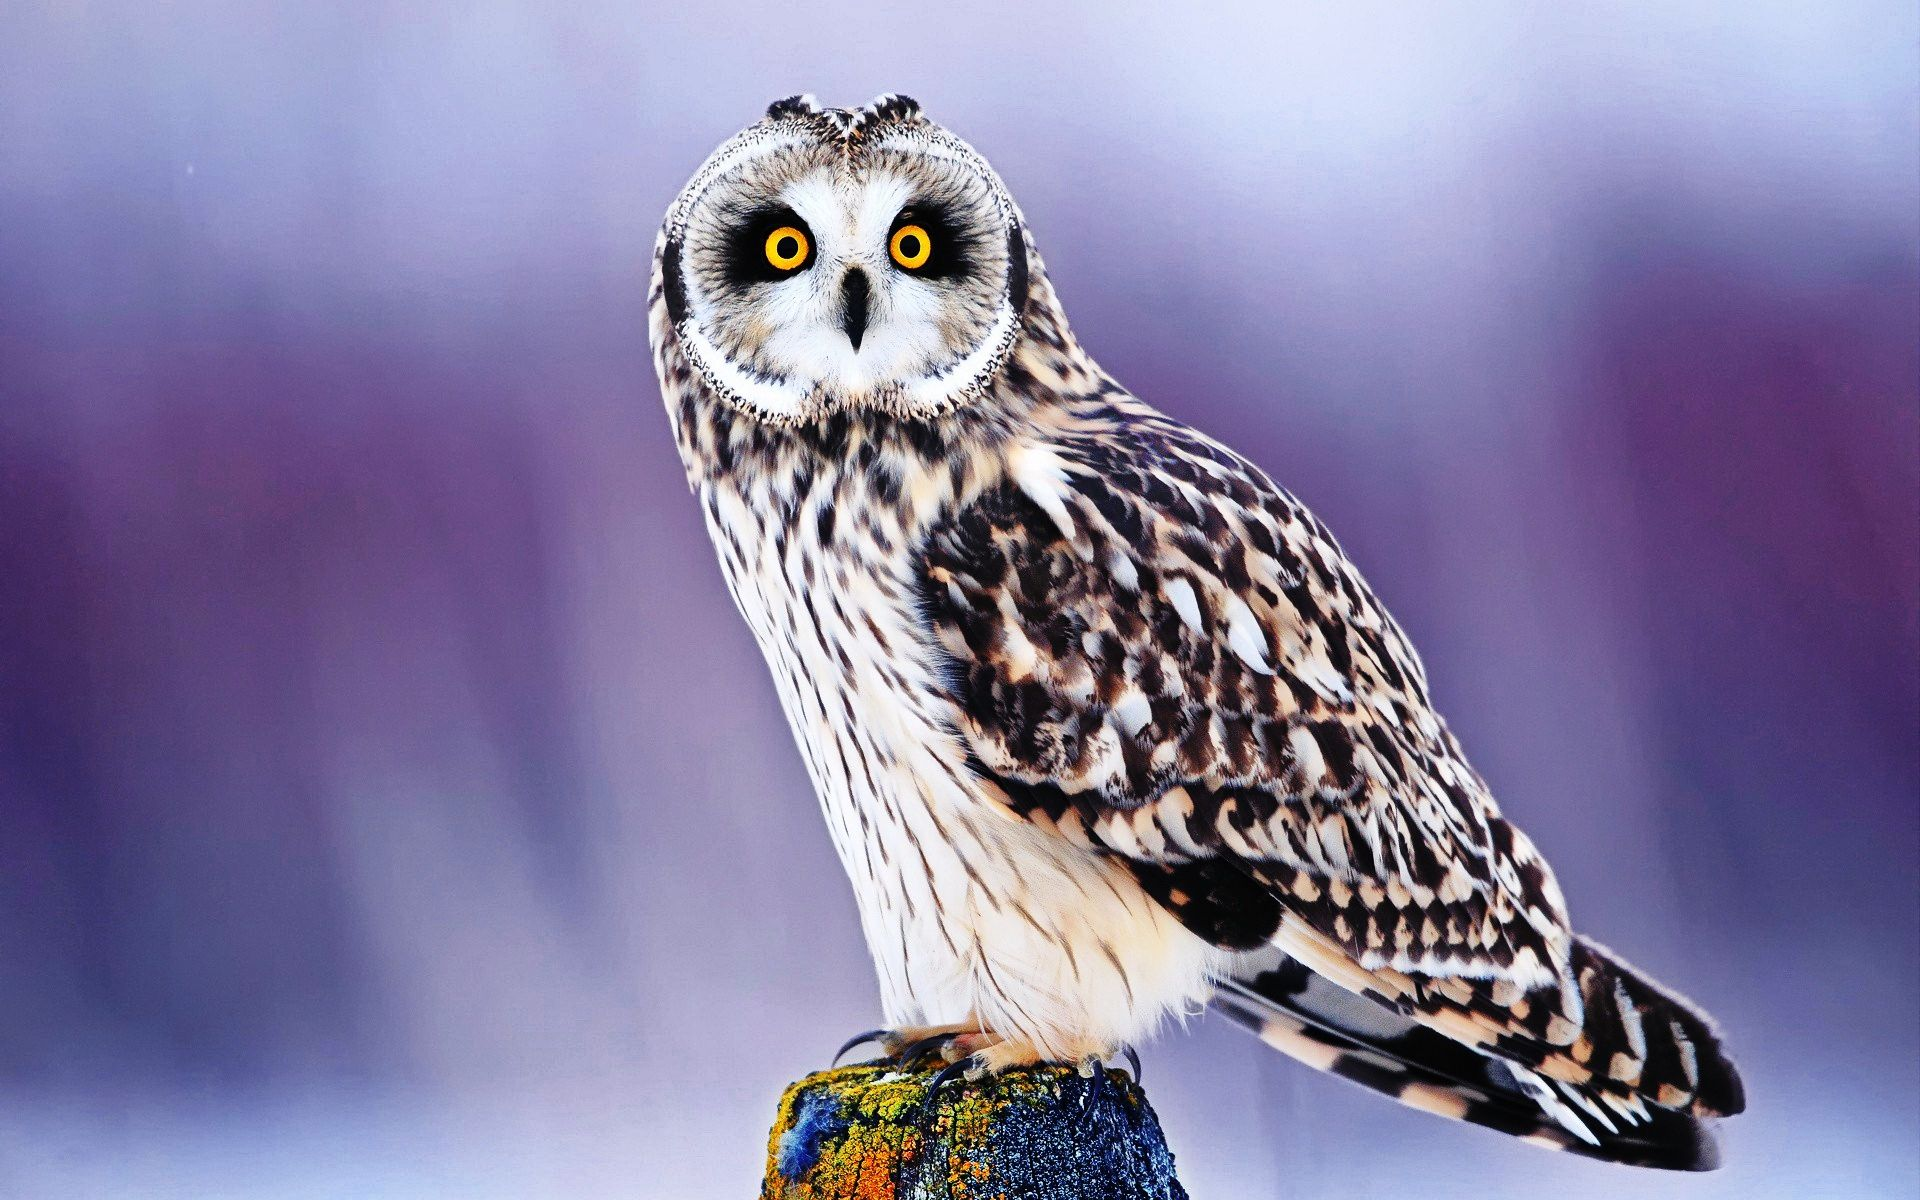 Best ideas about owl wallpaper iphone on pinterest owl hd best ideas about owl wallpaper iphone on pinterest owl voltagebd Choice Image